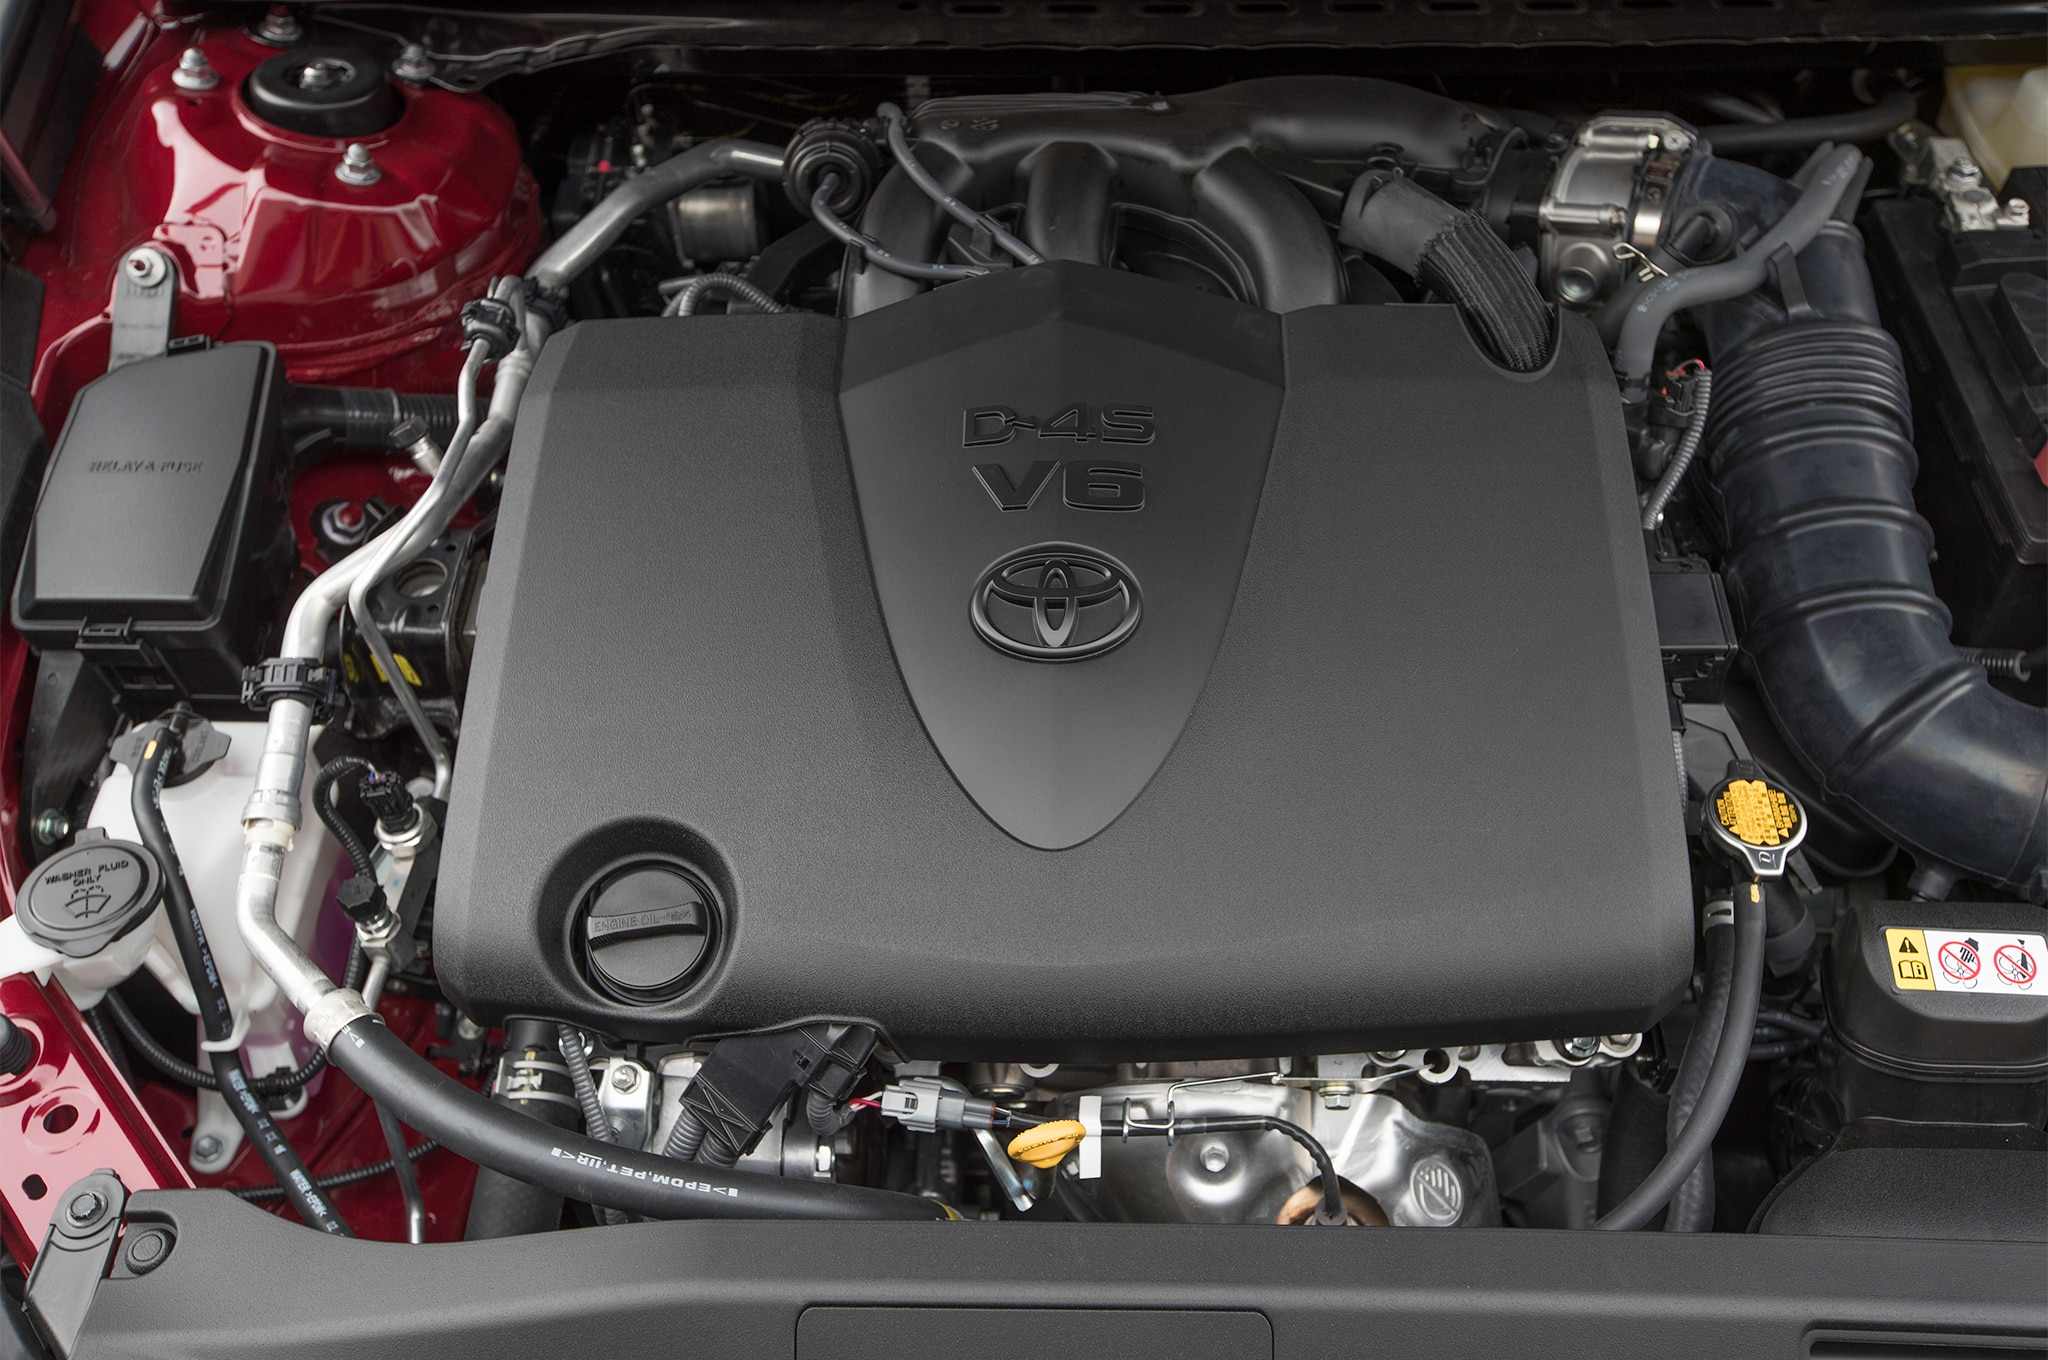 camry 3 5l v6 engine diagram wiring library Chrysler 3.5 Engine 20 things you didn\u0027t know about the 2018 toyota camry automobile 65 89 camry 3 5l v6 engine diagram